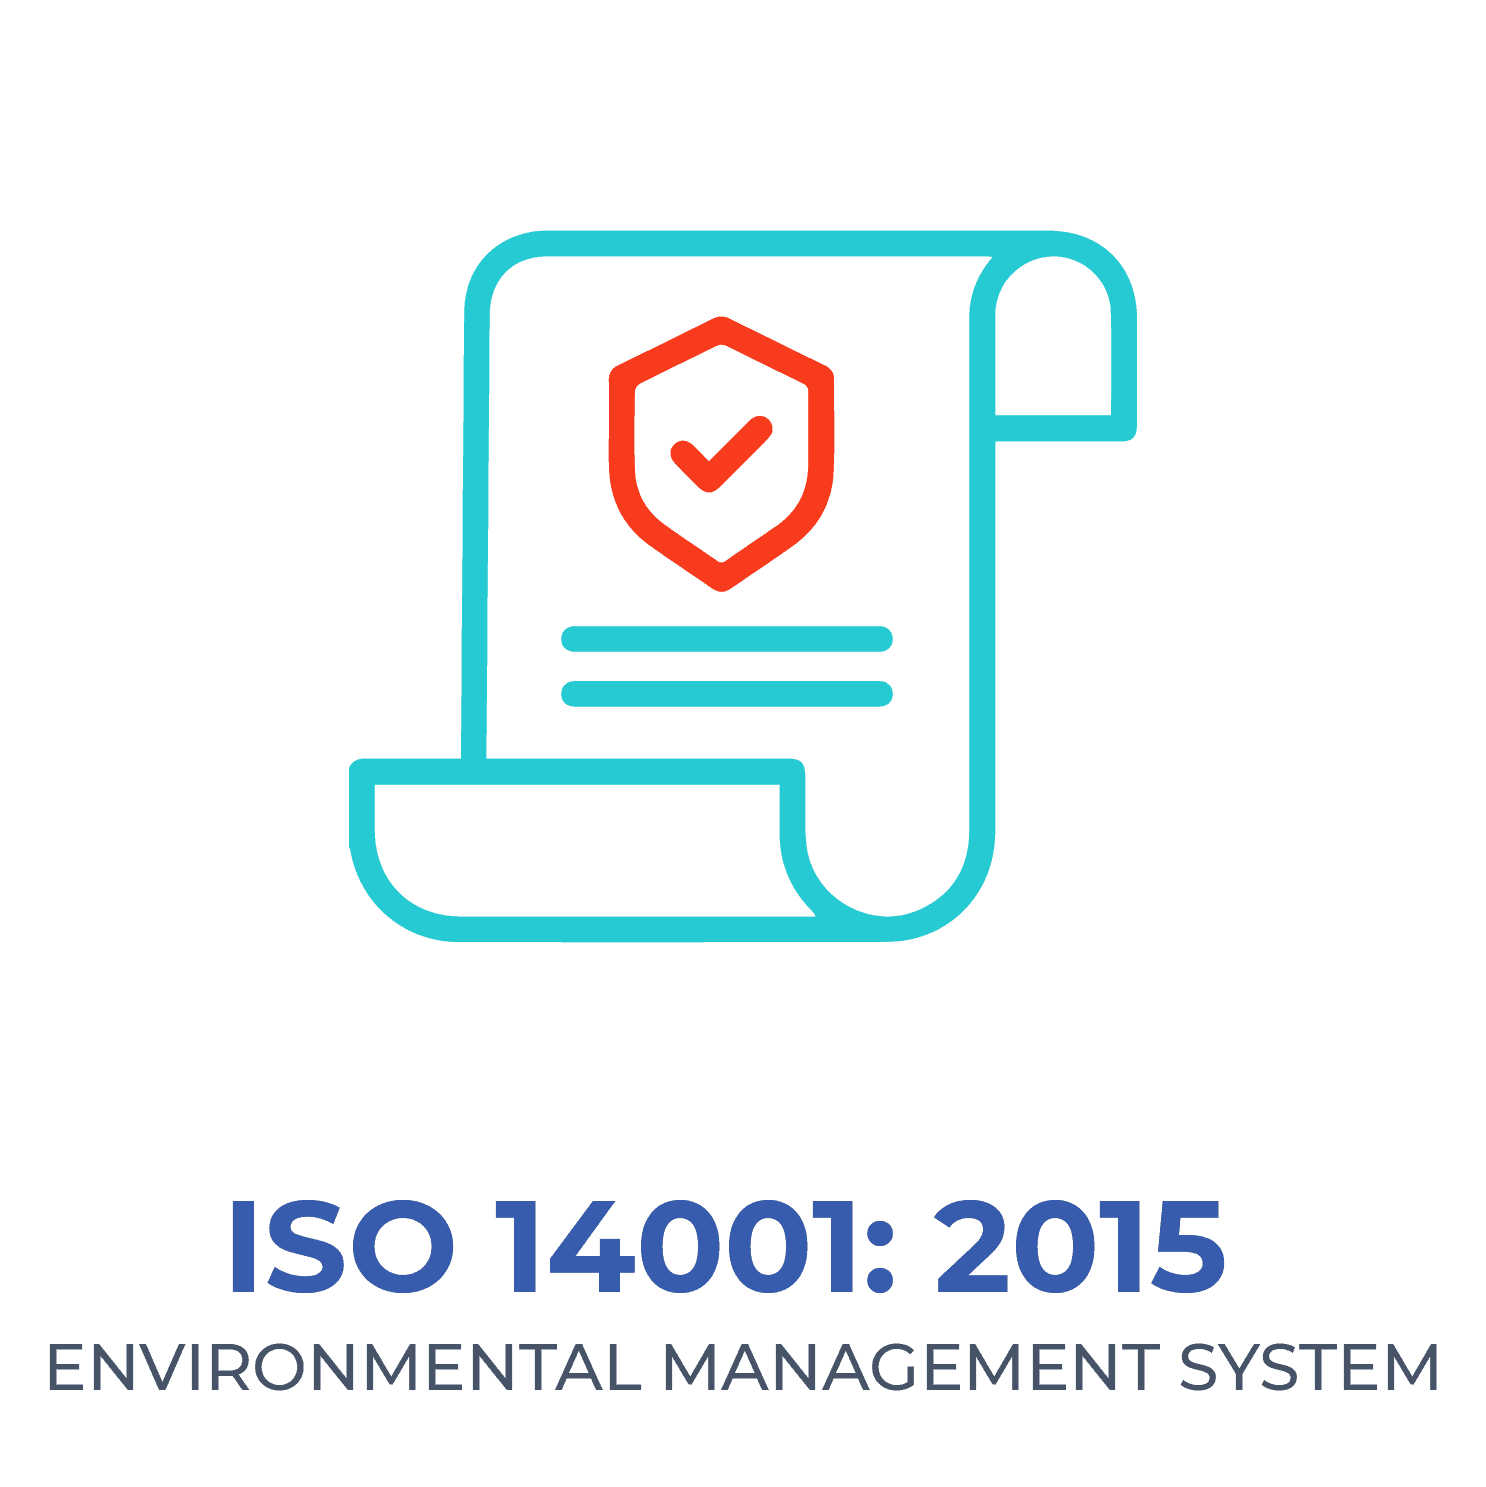 Brentwood ISO 14001:2015 Certification